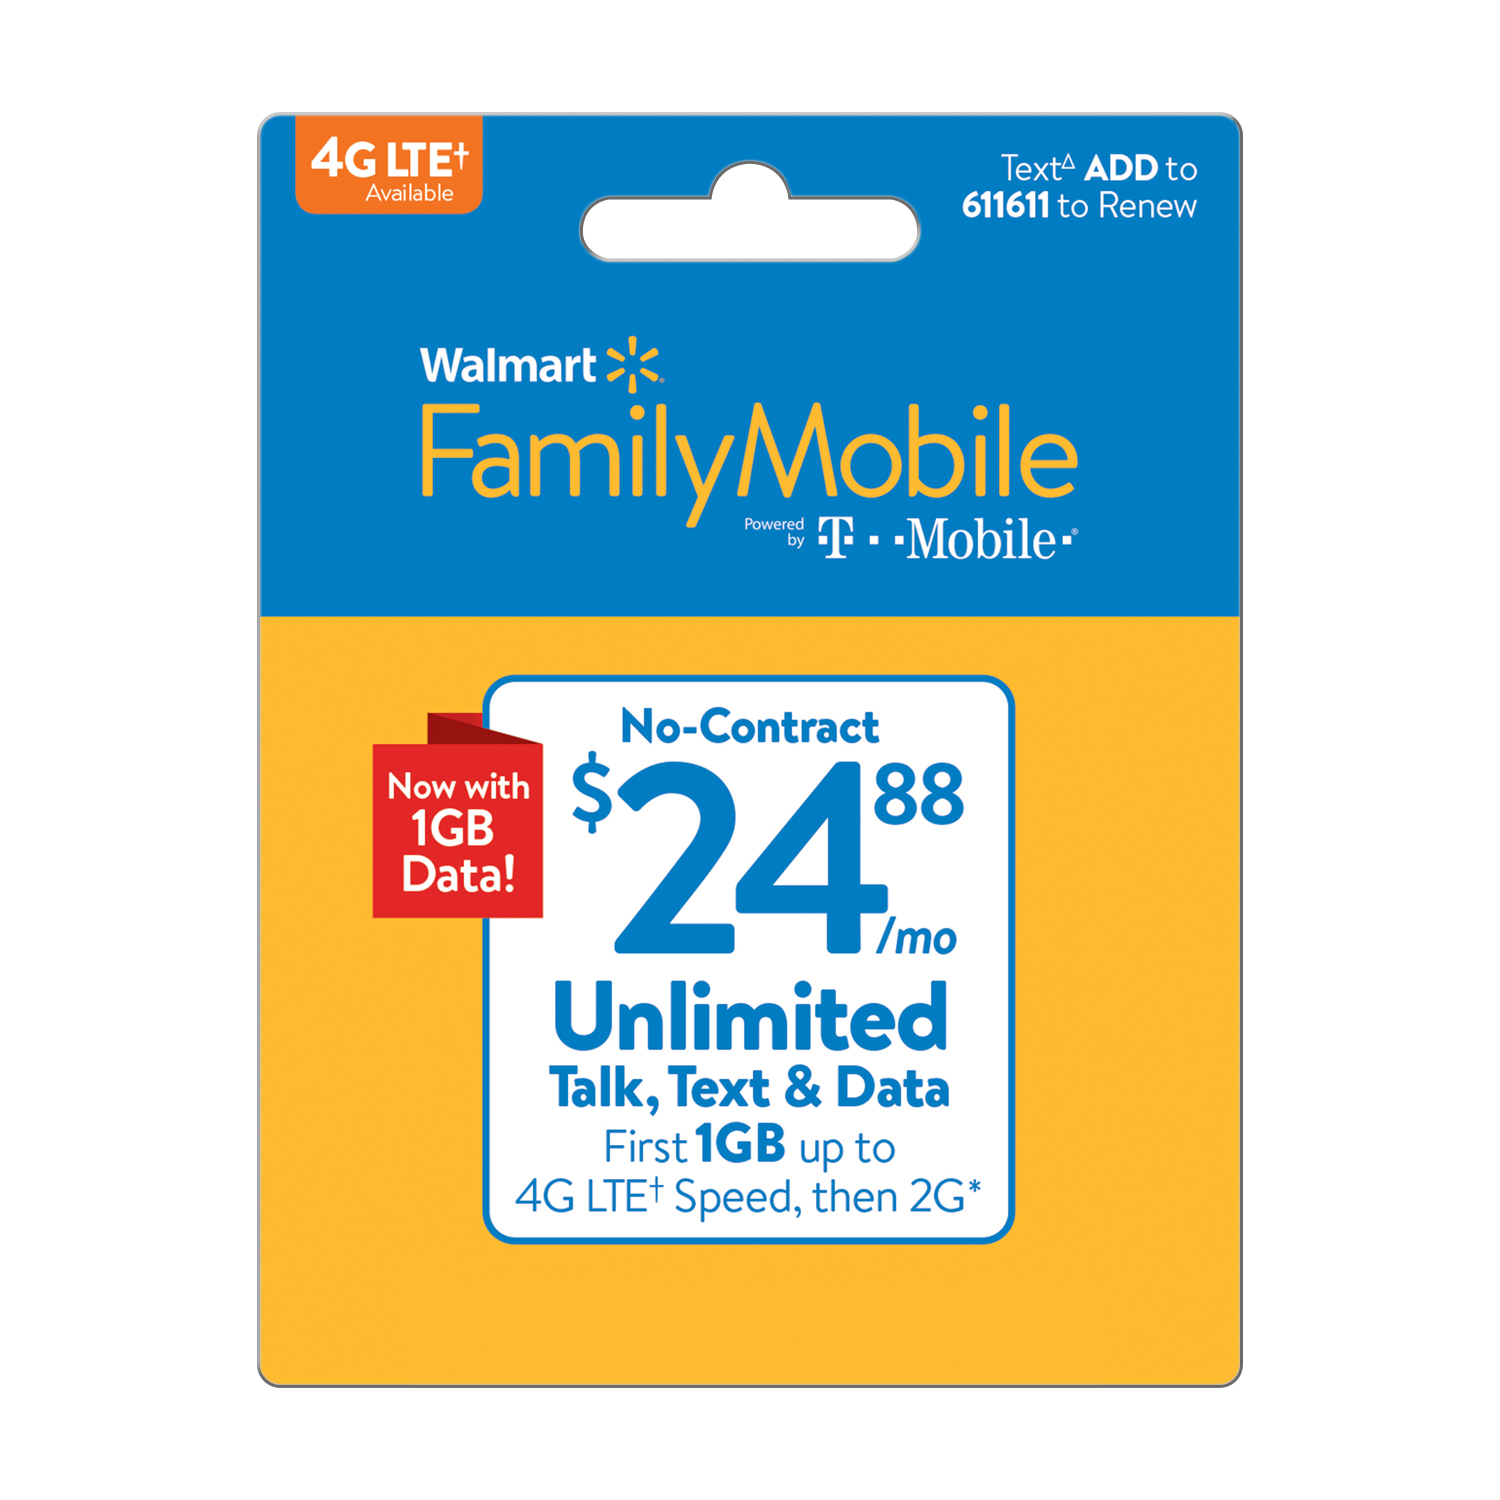 Walmart Family Mobile $24.88 Unlimited Monthly Plan (1GB at high speed, then 2G*) (Email Delivery)